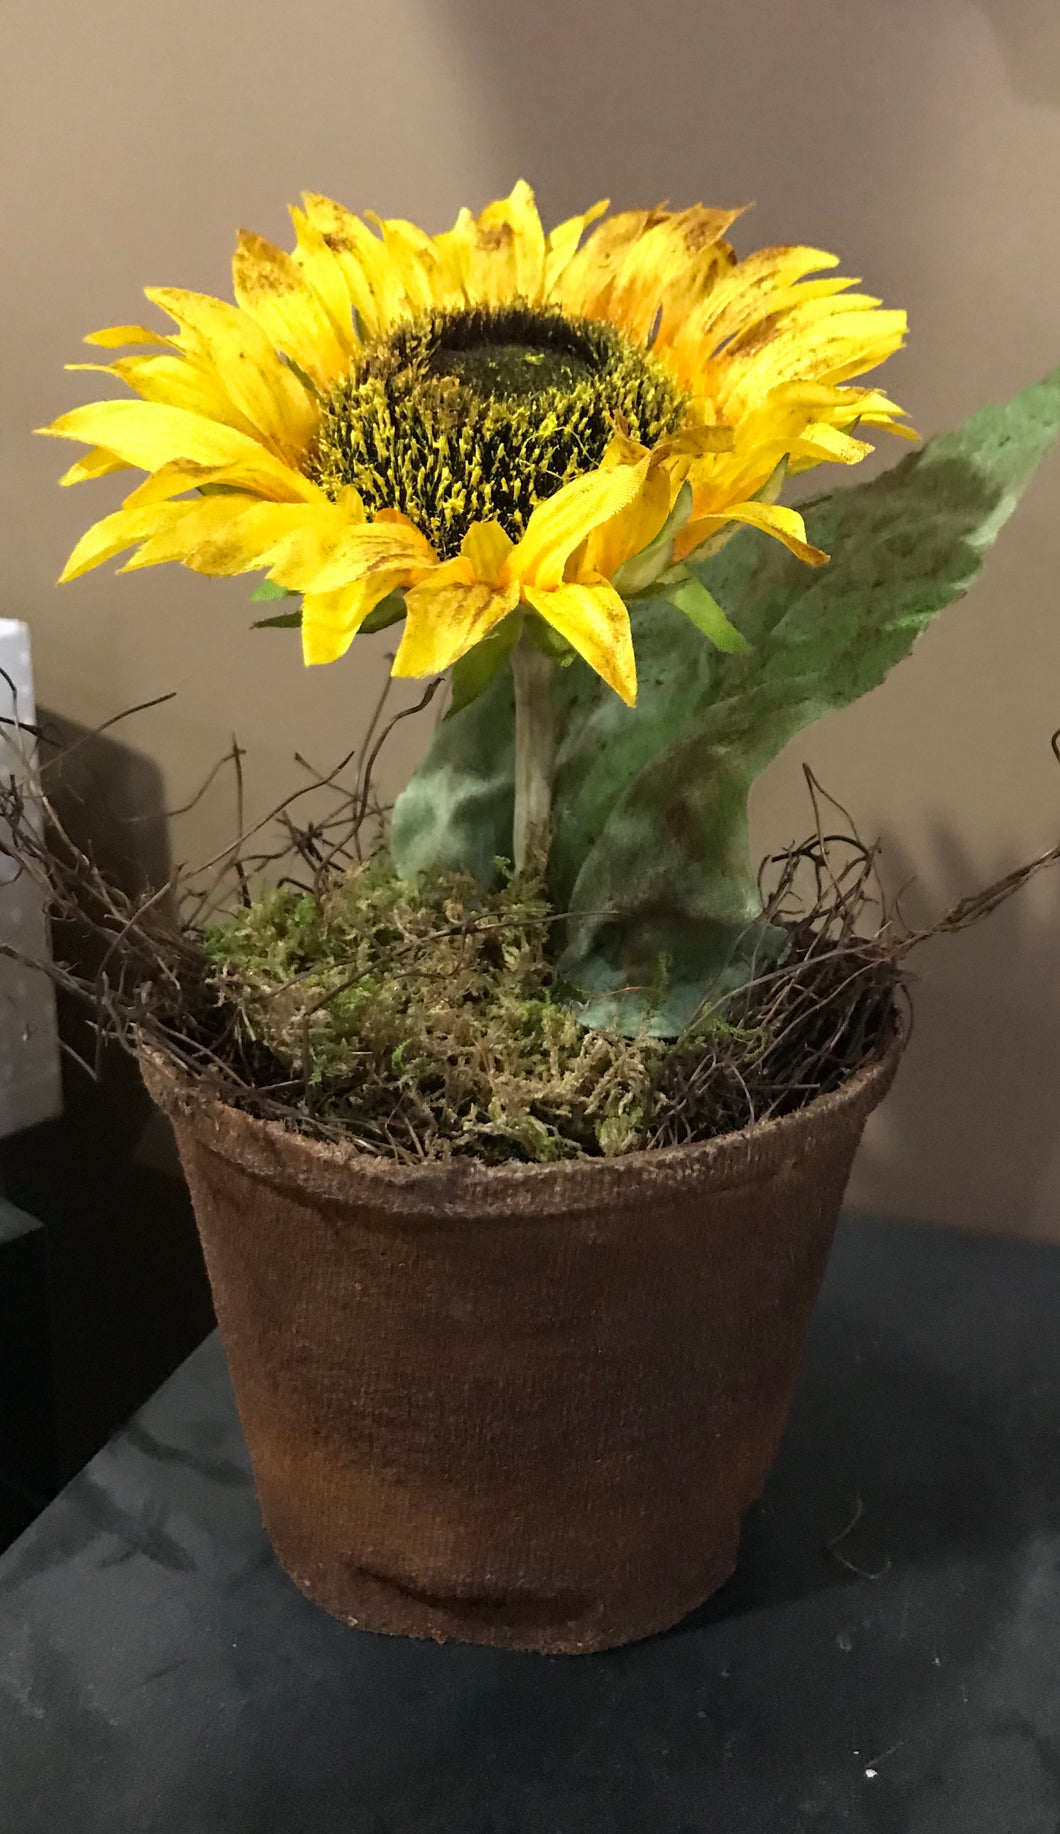 Grubby Potted Sunflower